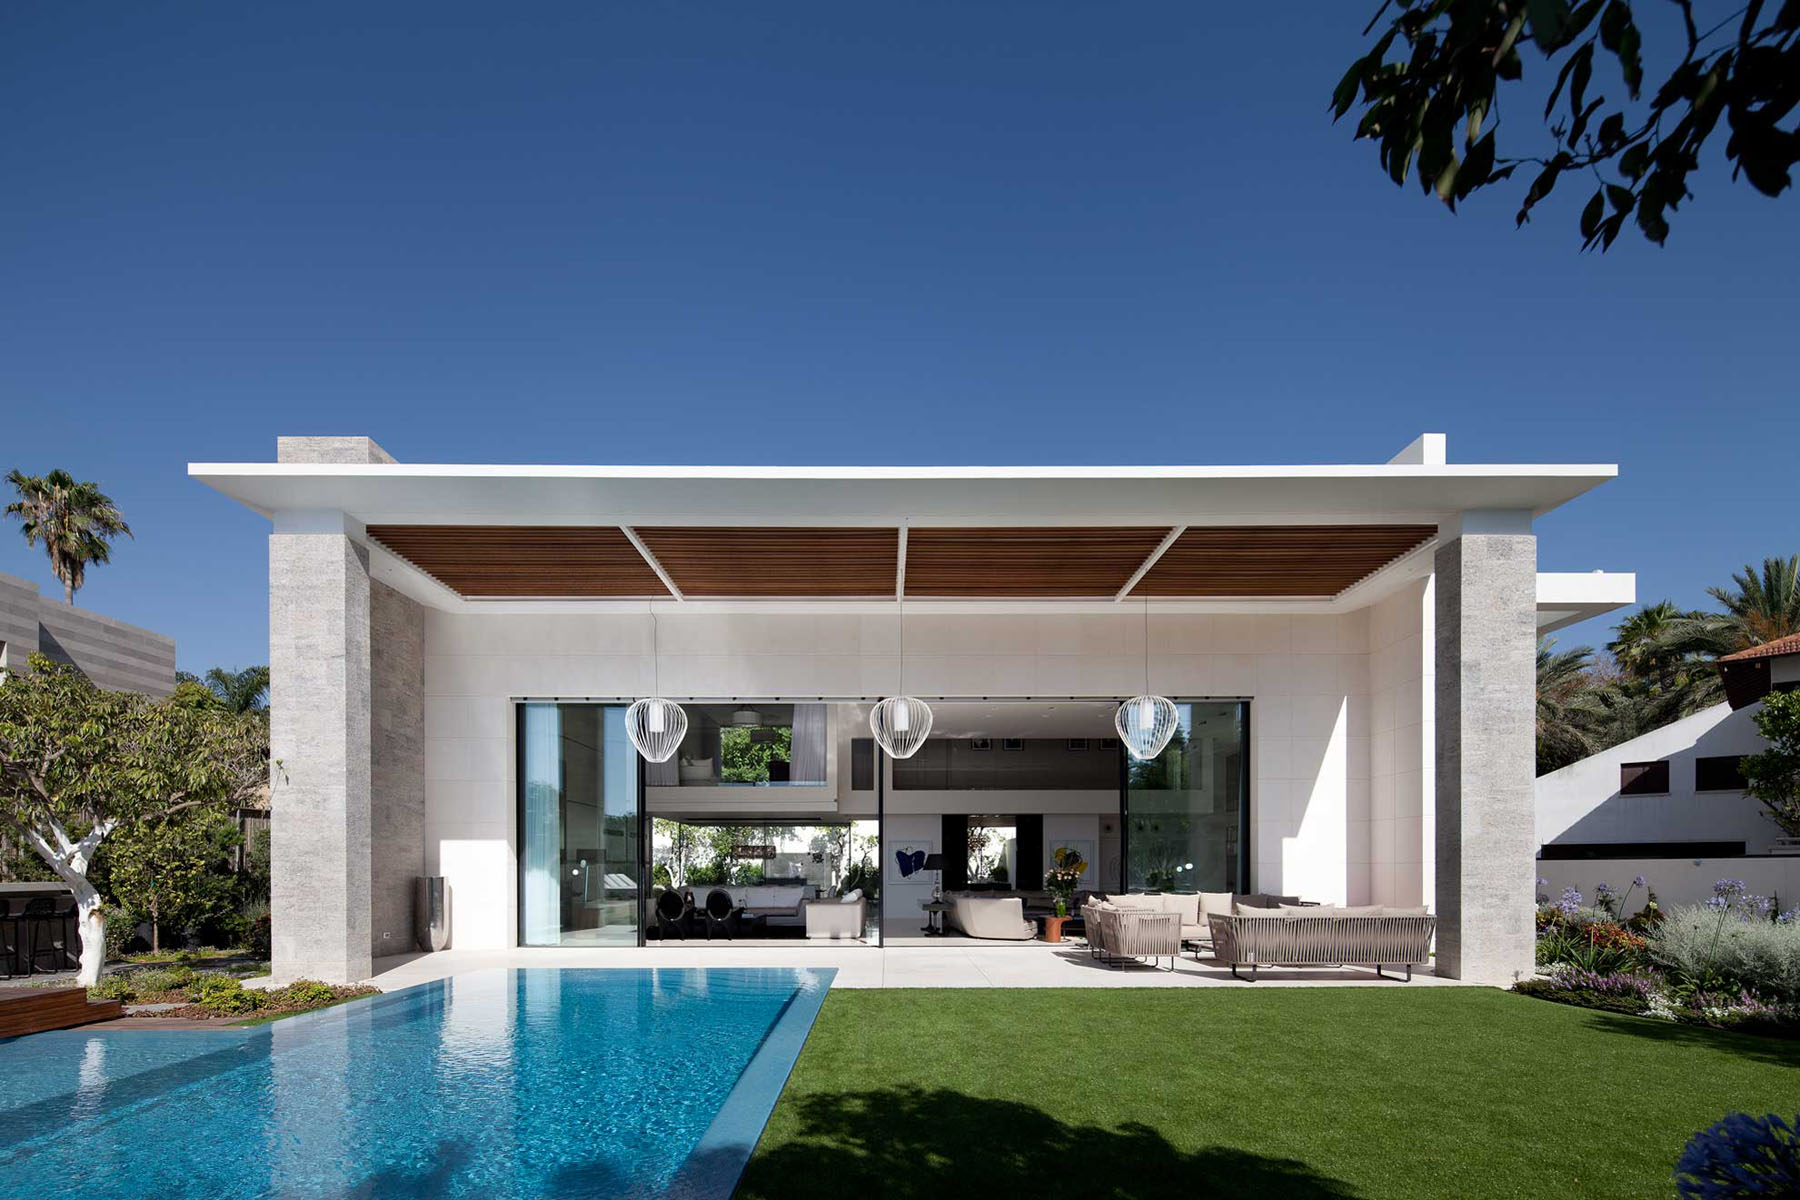 Modern Cube House In Israel Offers The Ultimate In Refined Luxury Idesignarch Interior